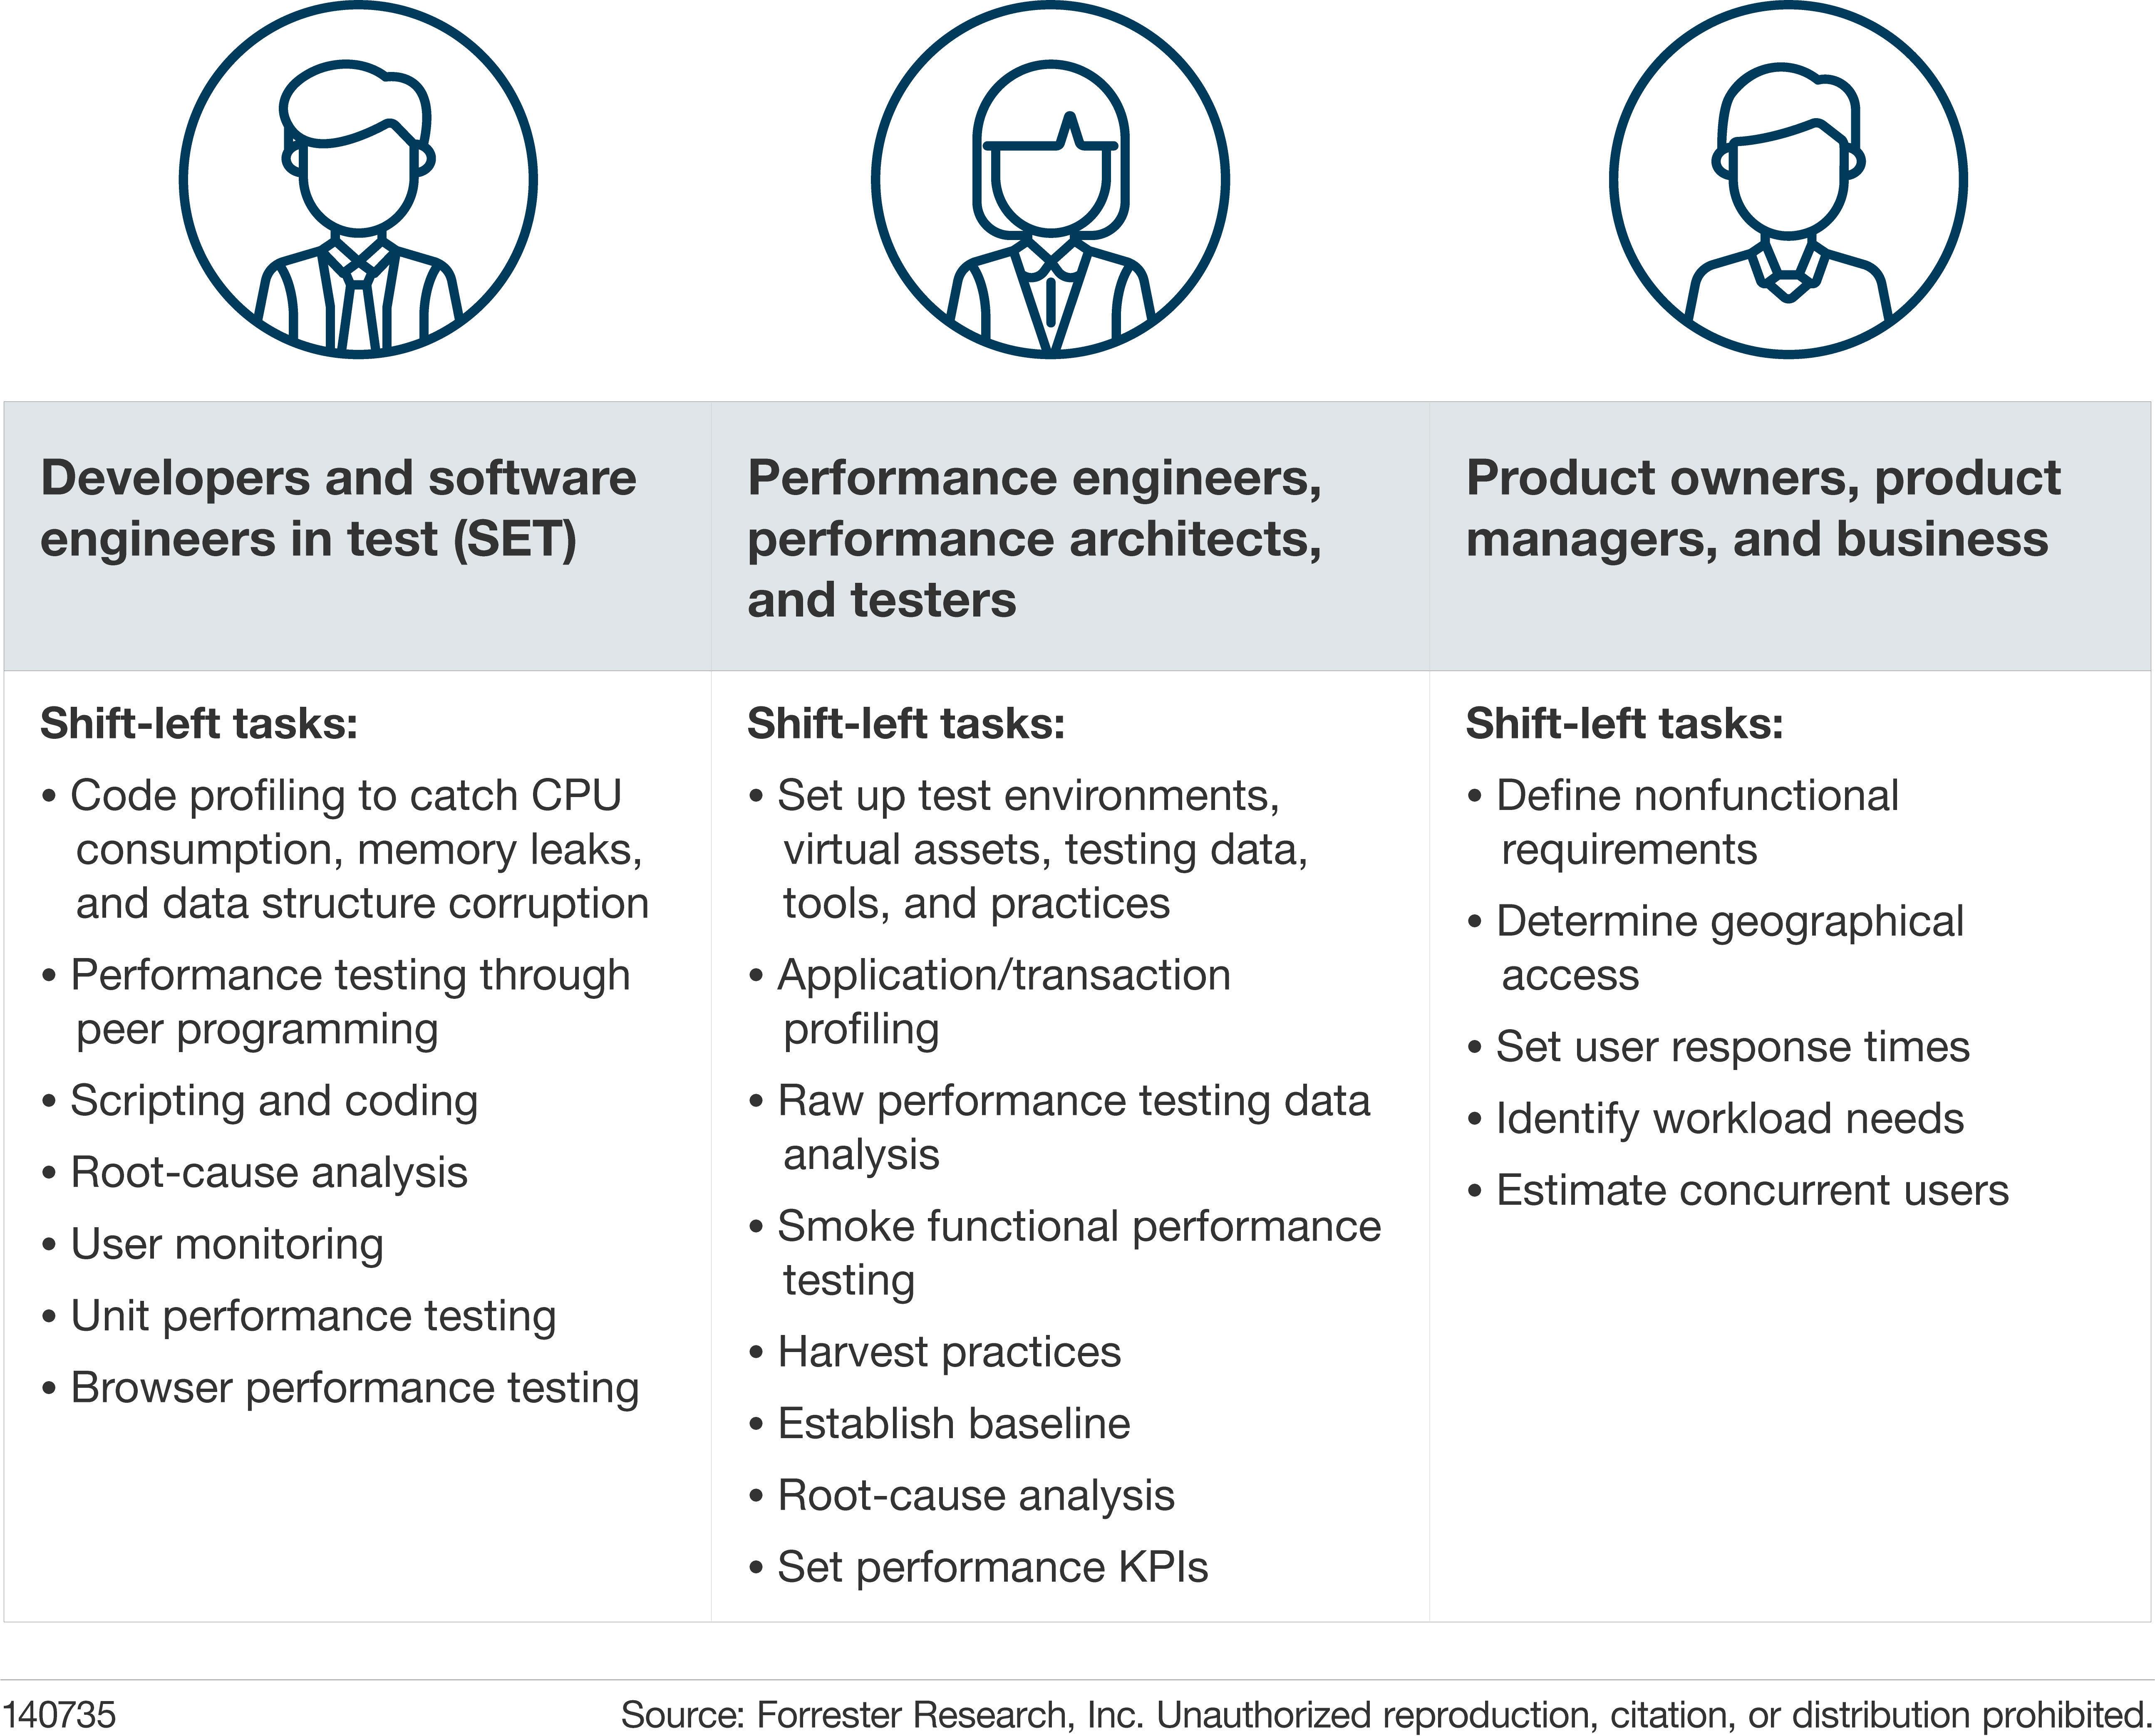 It's Time For Shift-Left Performance Testing